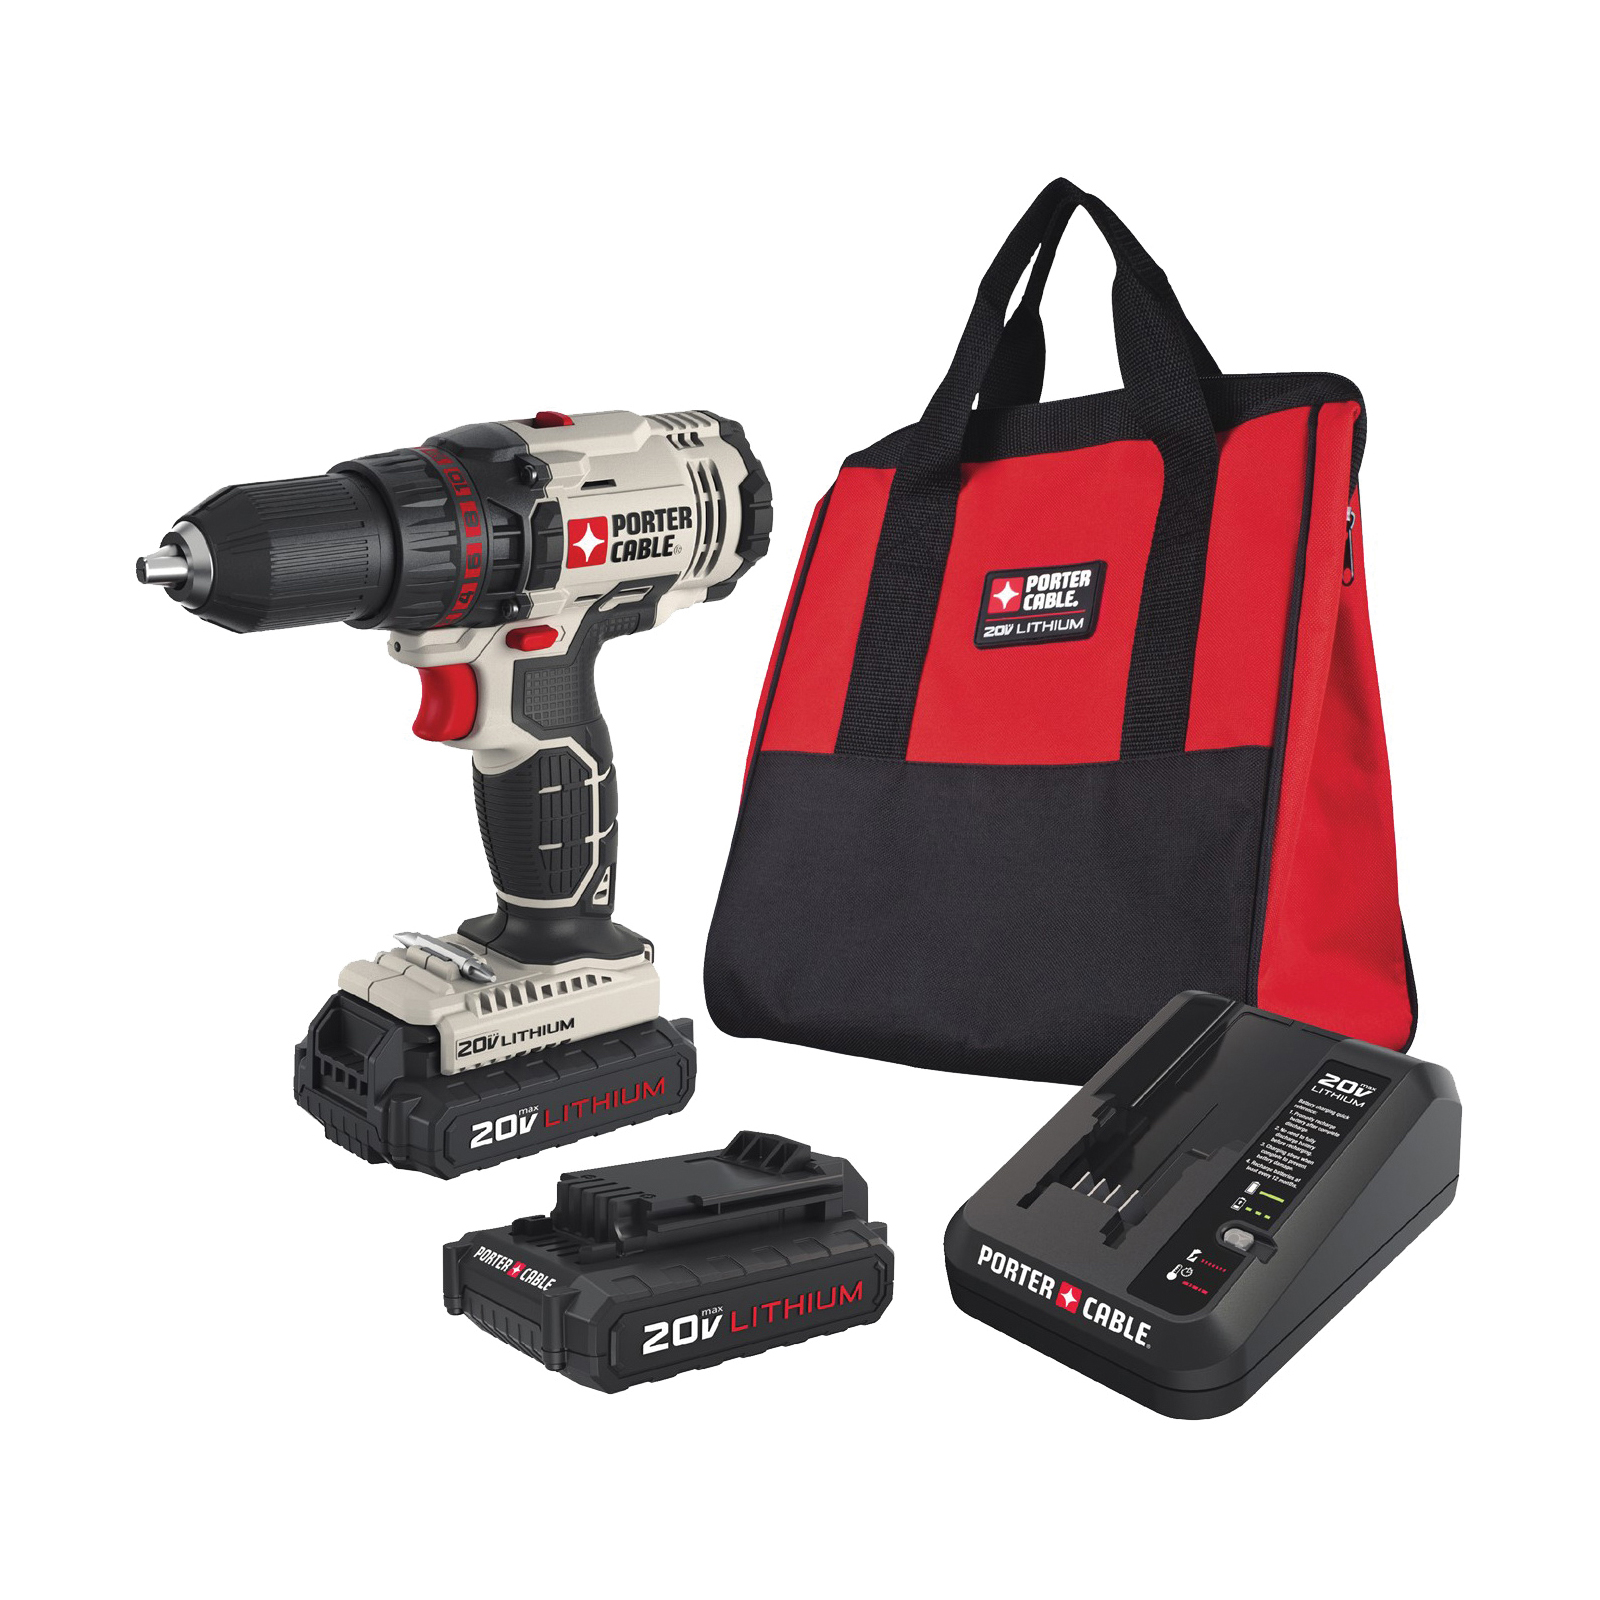 Picture of PORTER-CABLE PCC601LB Drill/Driver Kit, Kit, 20 V Battery, 1/2 in Chuck, Keyless Chuck, Battery Included: Yes